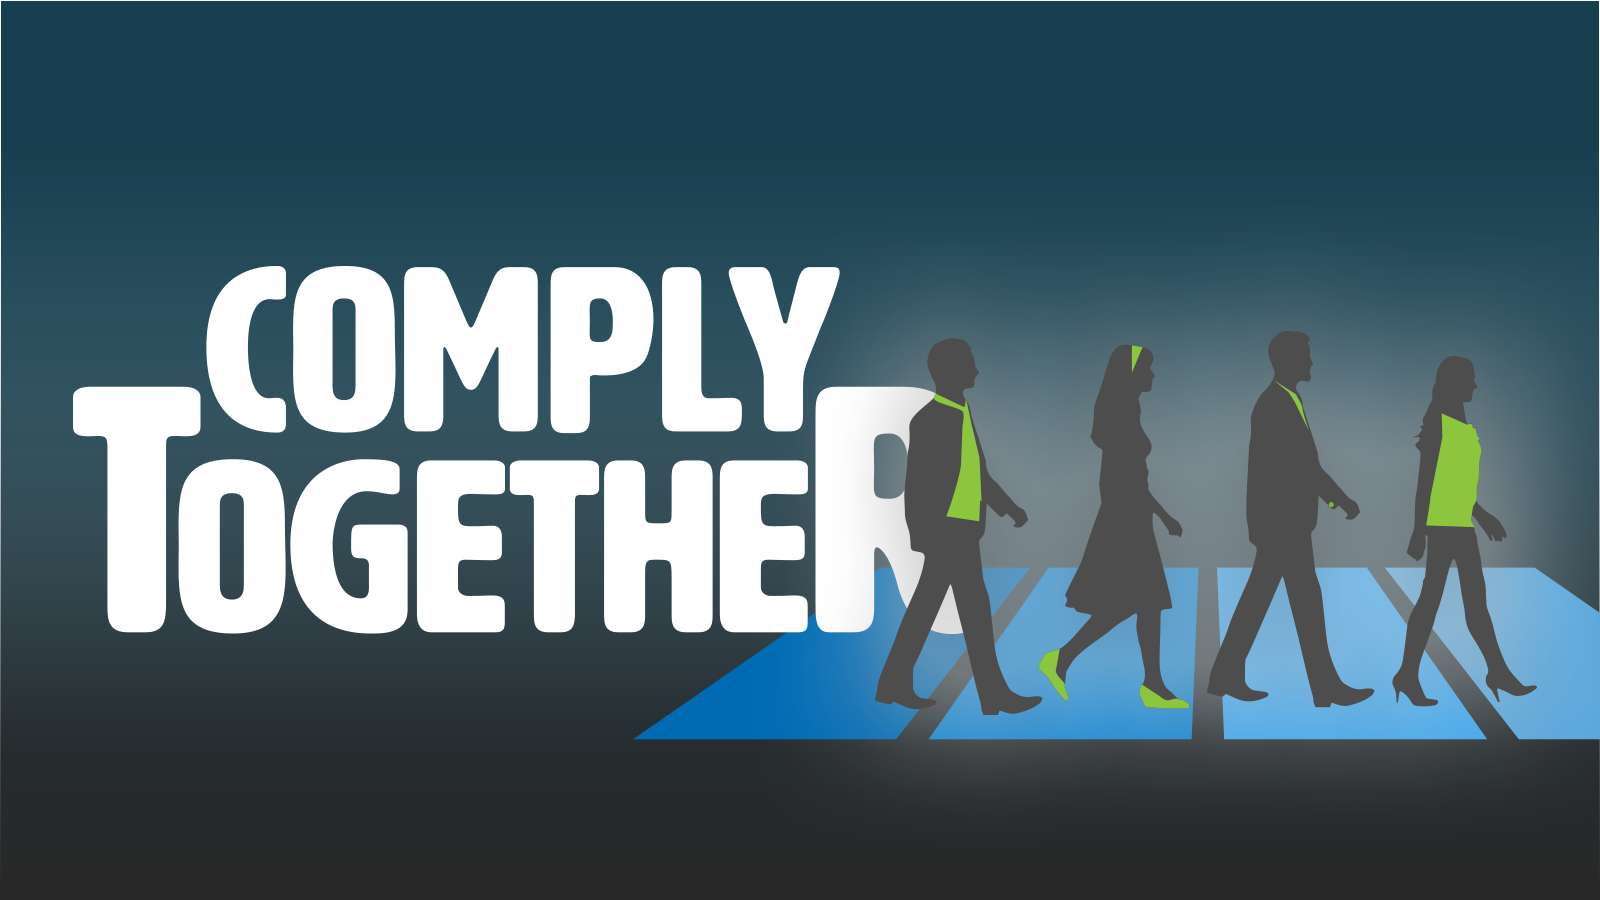 COMPLY2019: The Year of Collaboration